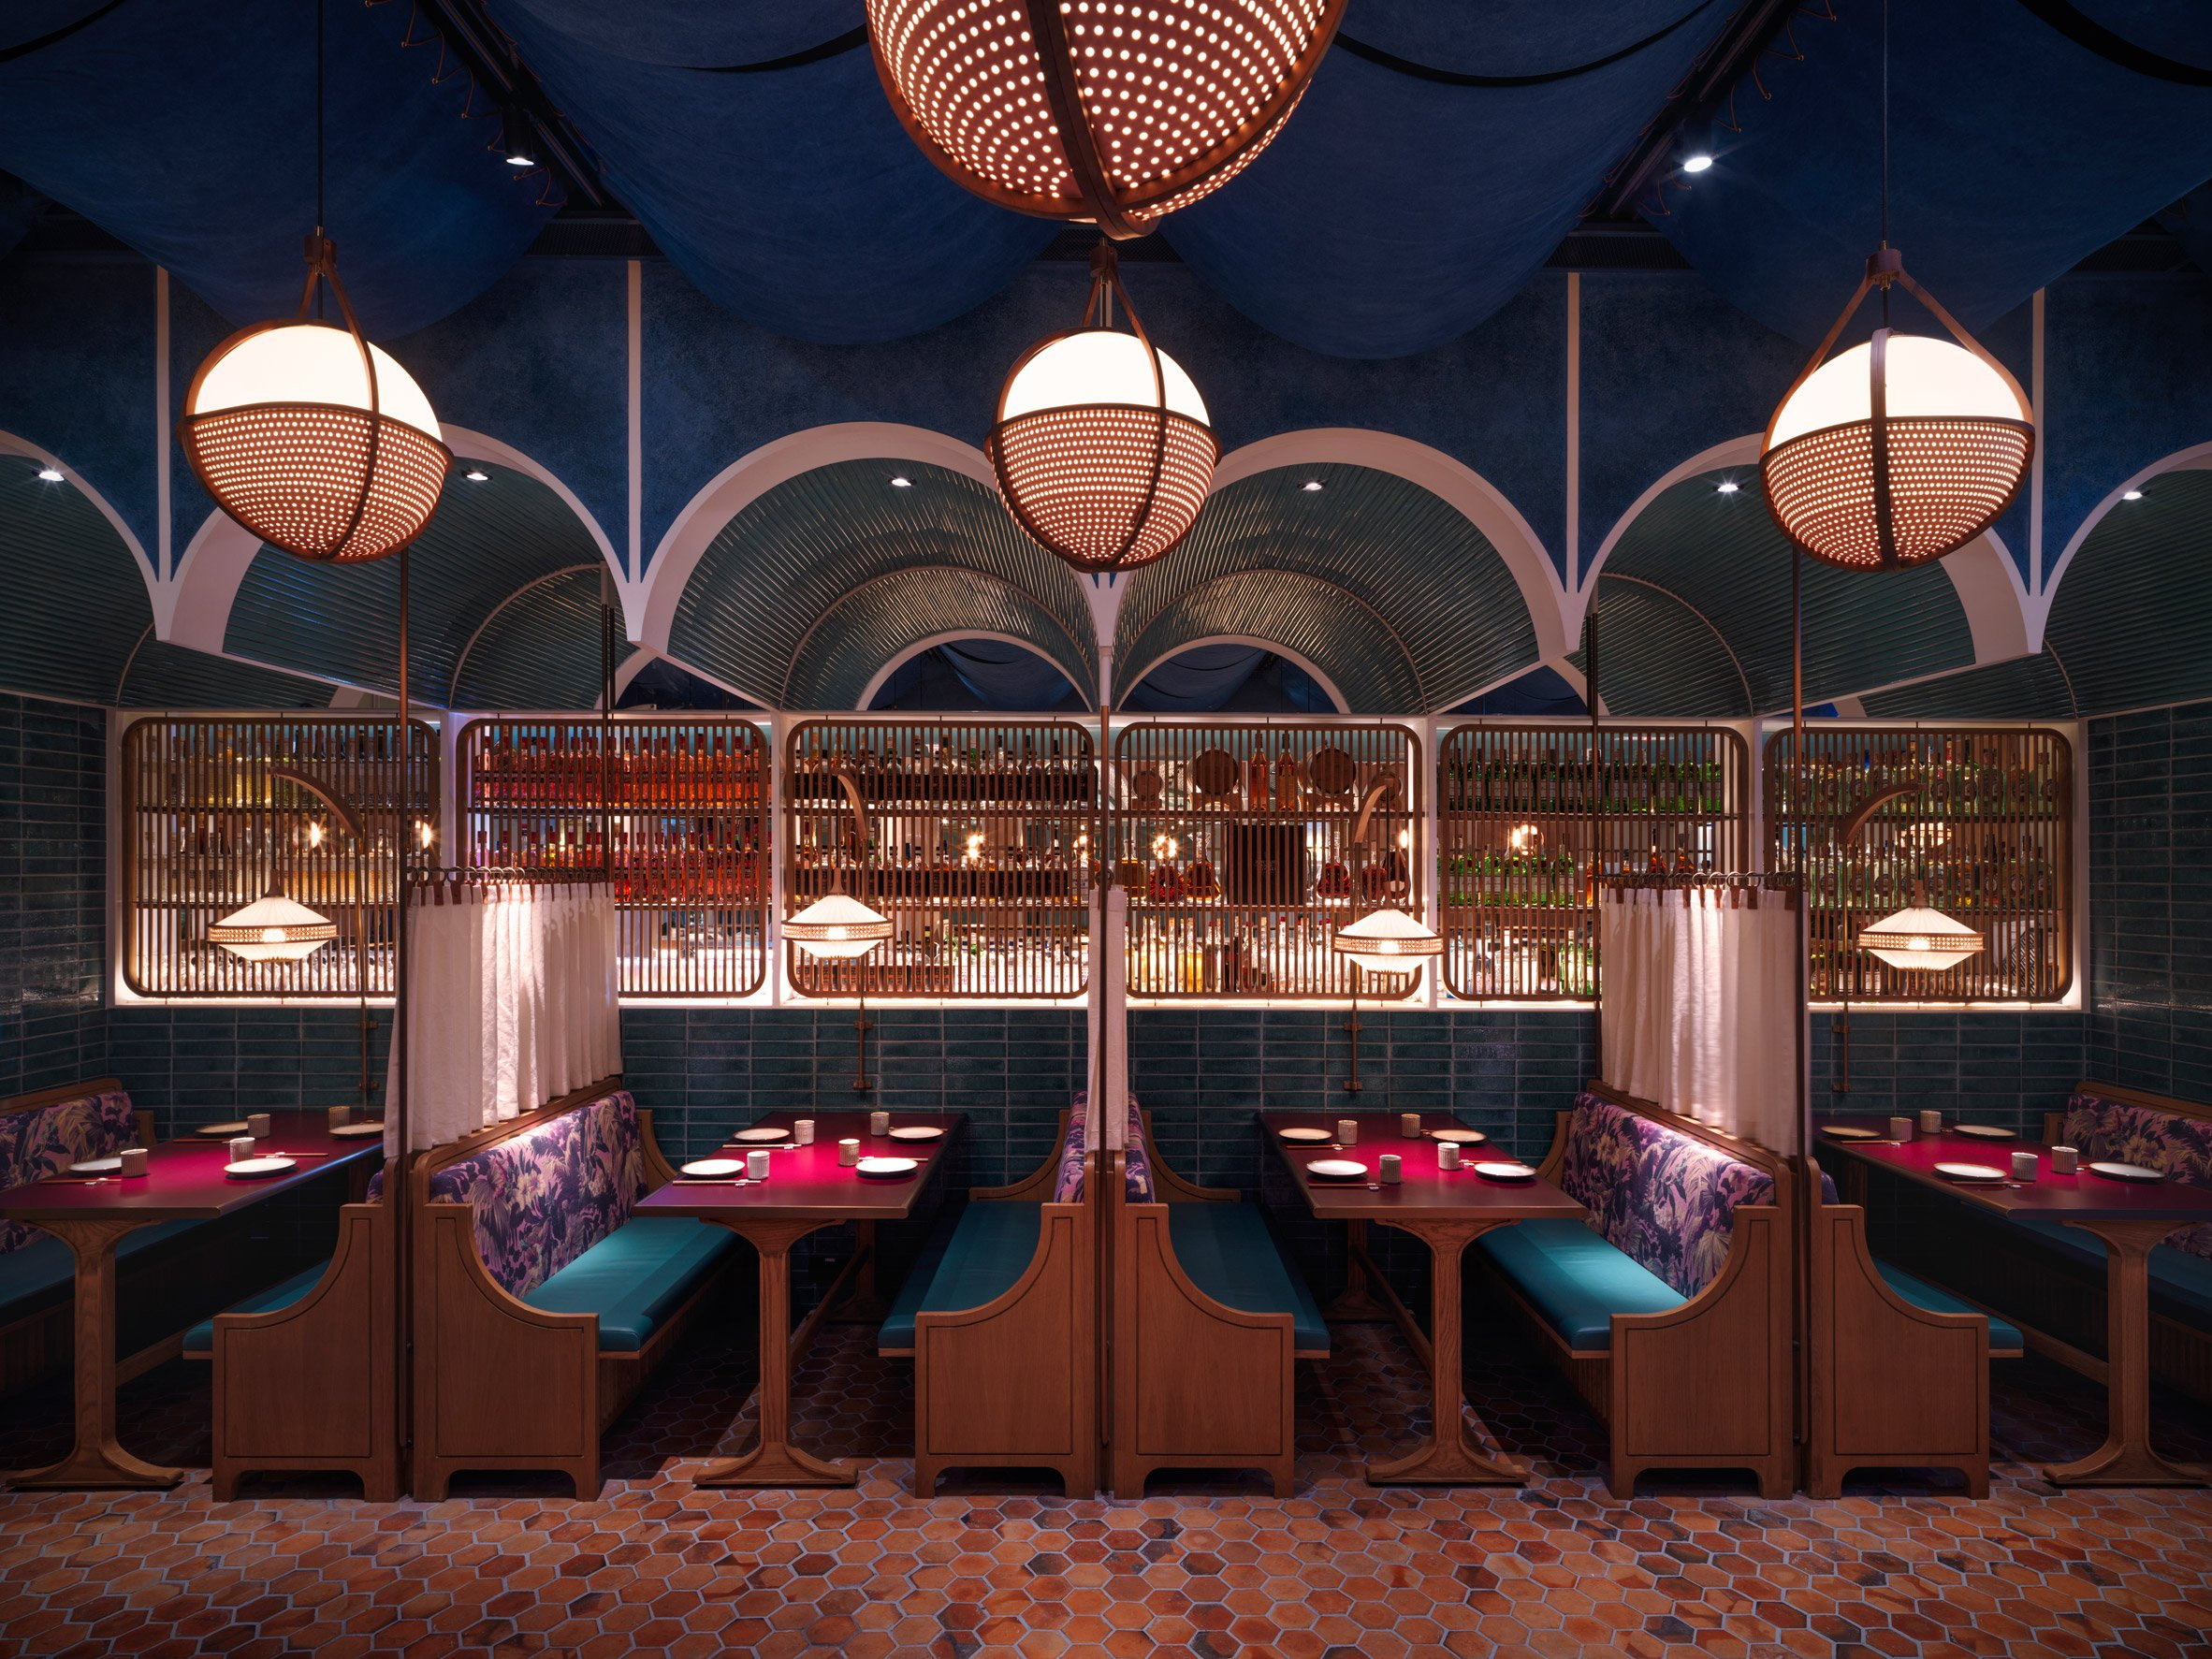 Dim sum restaurant by Linehouse Studio fuses east and west